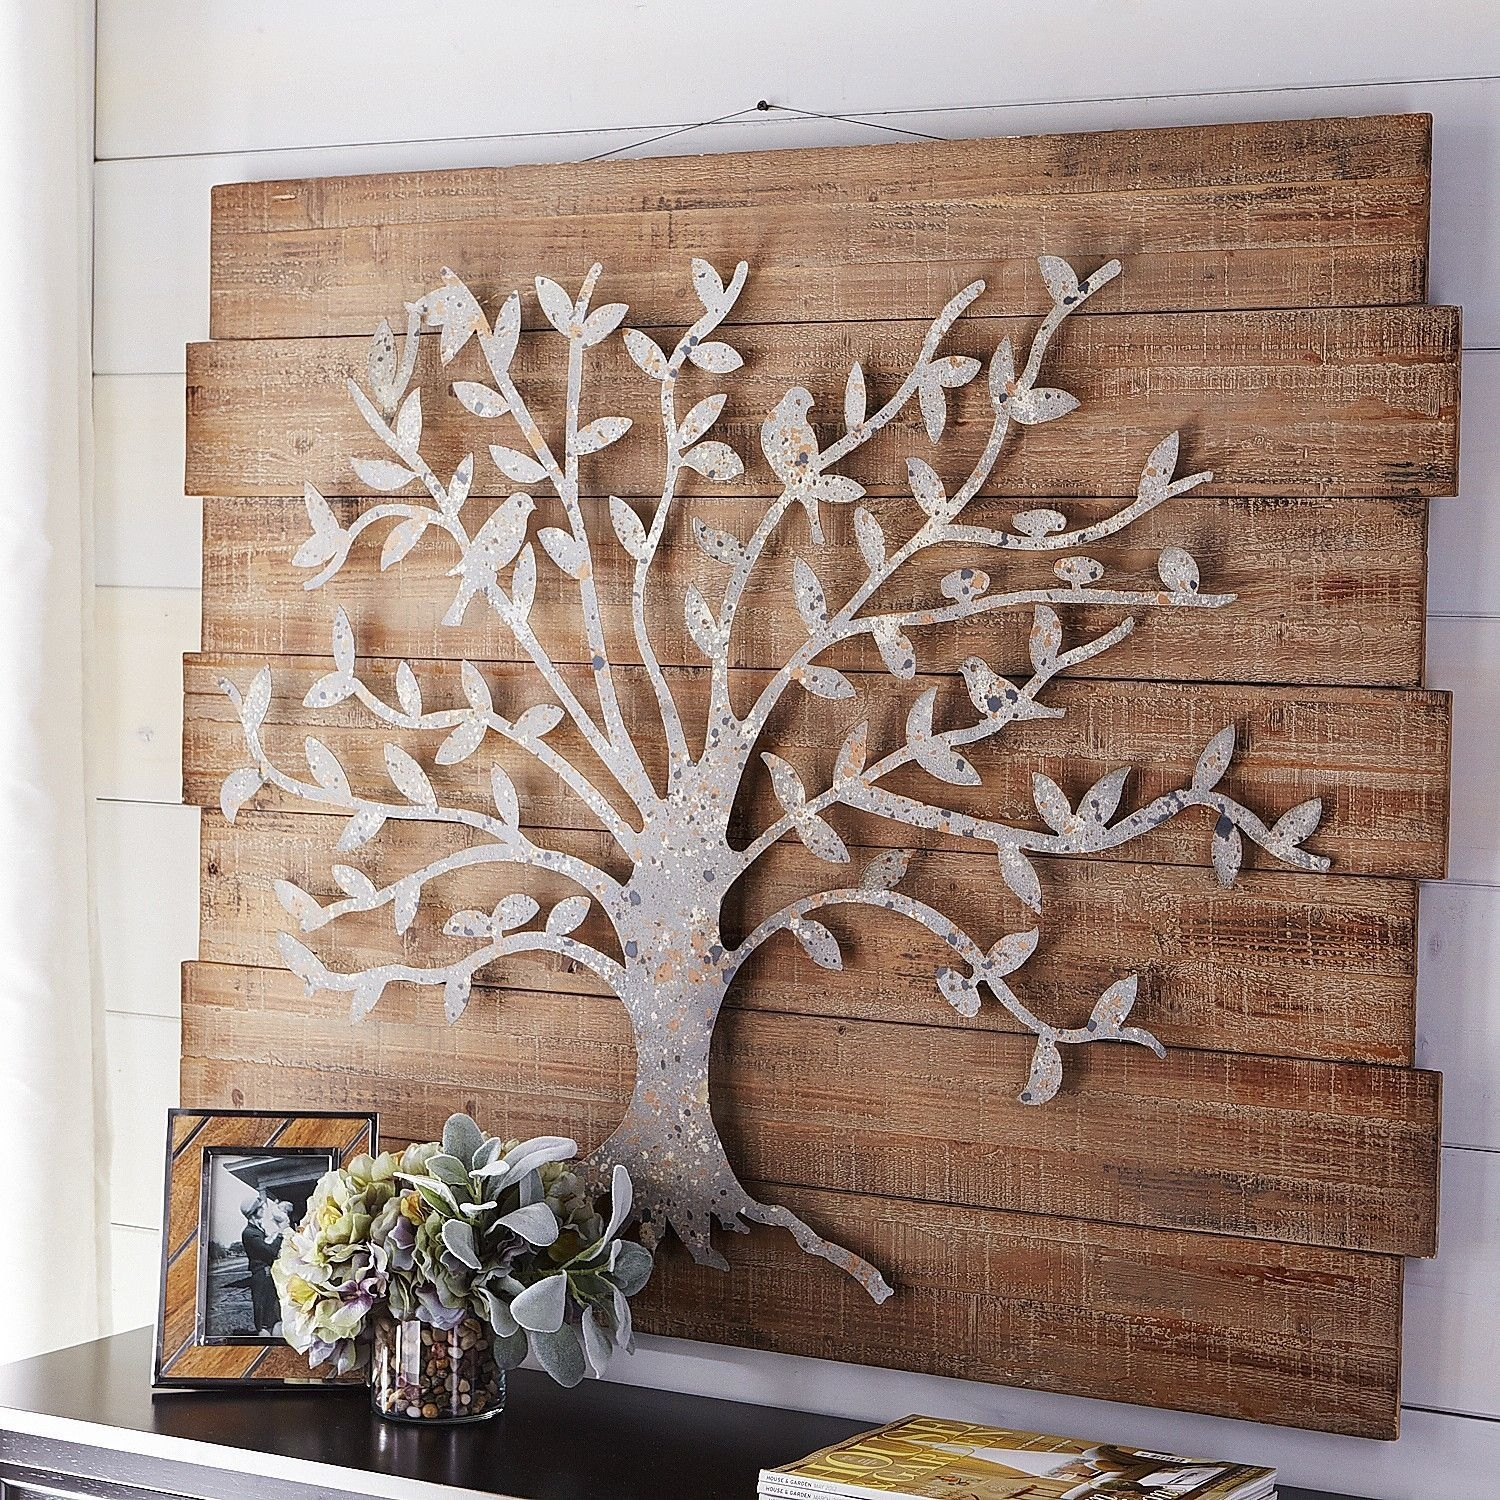 Timeless Tree Wall Decor | Pier 1 Imports … | Metal Work | Pinte… For Most Popular Tree Wall Art (View 12 of 15)